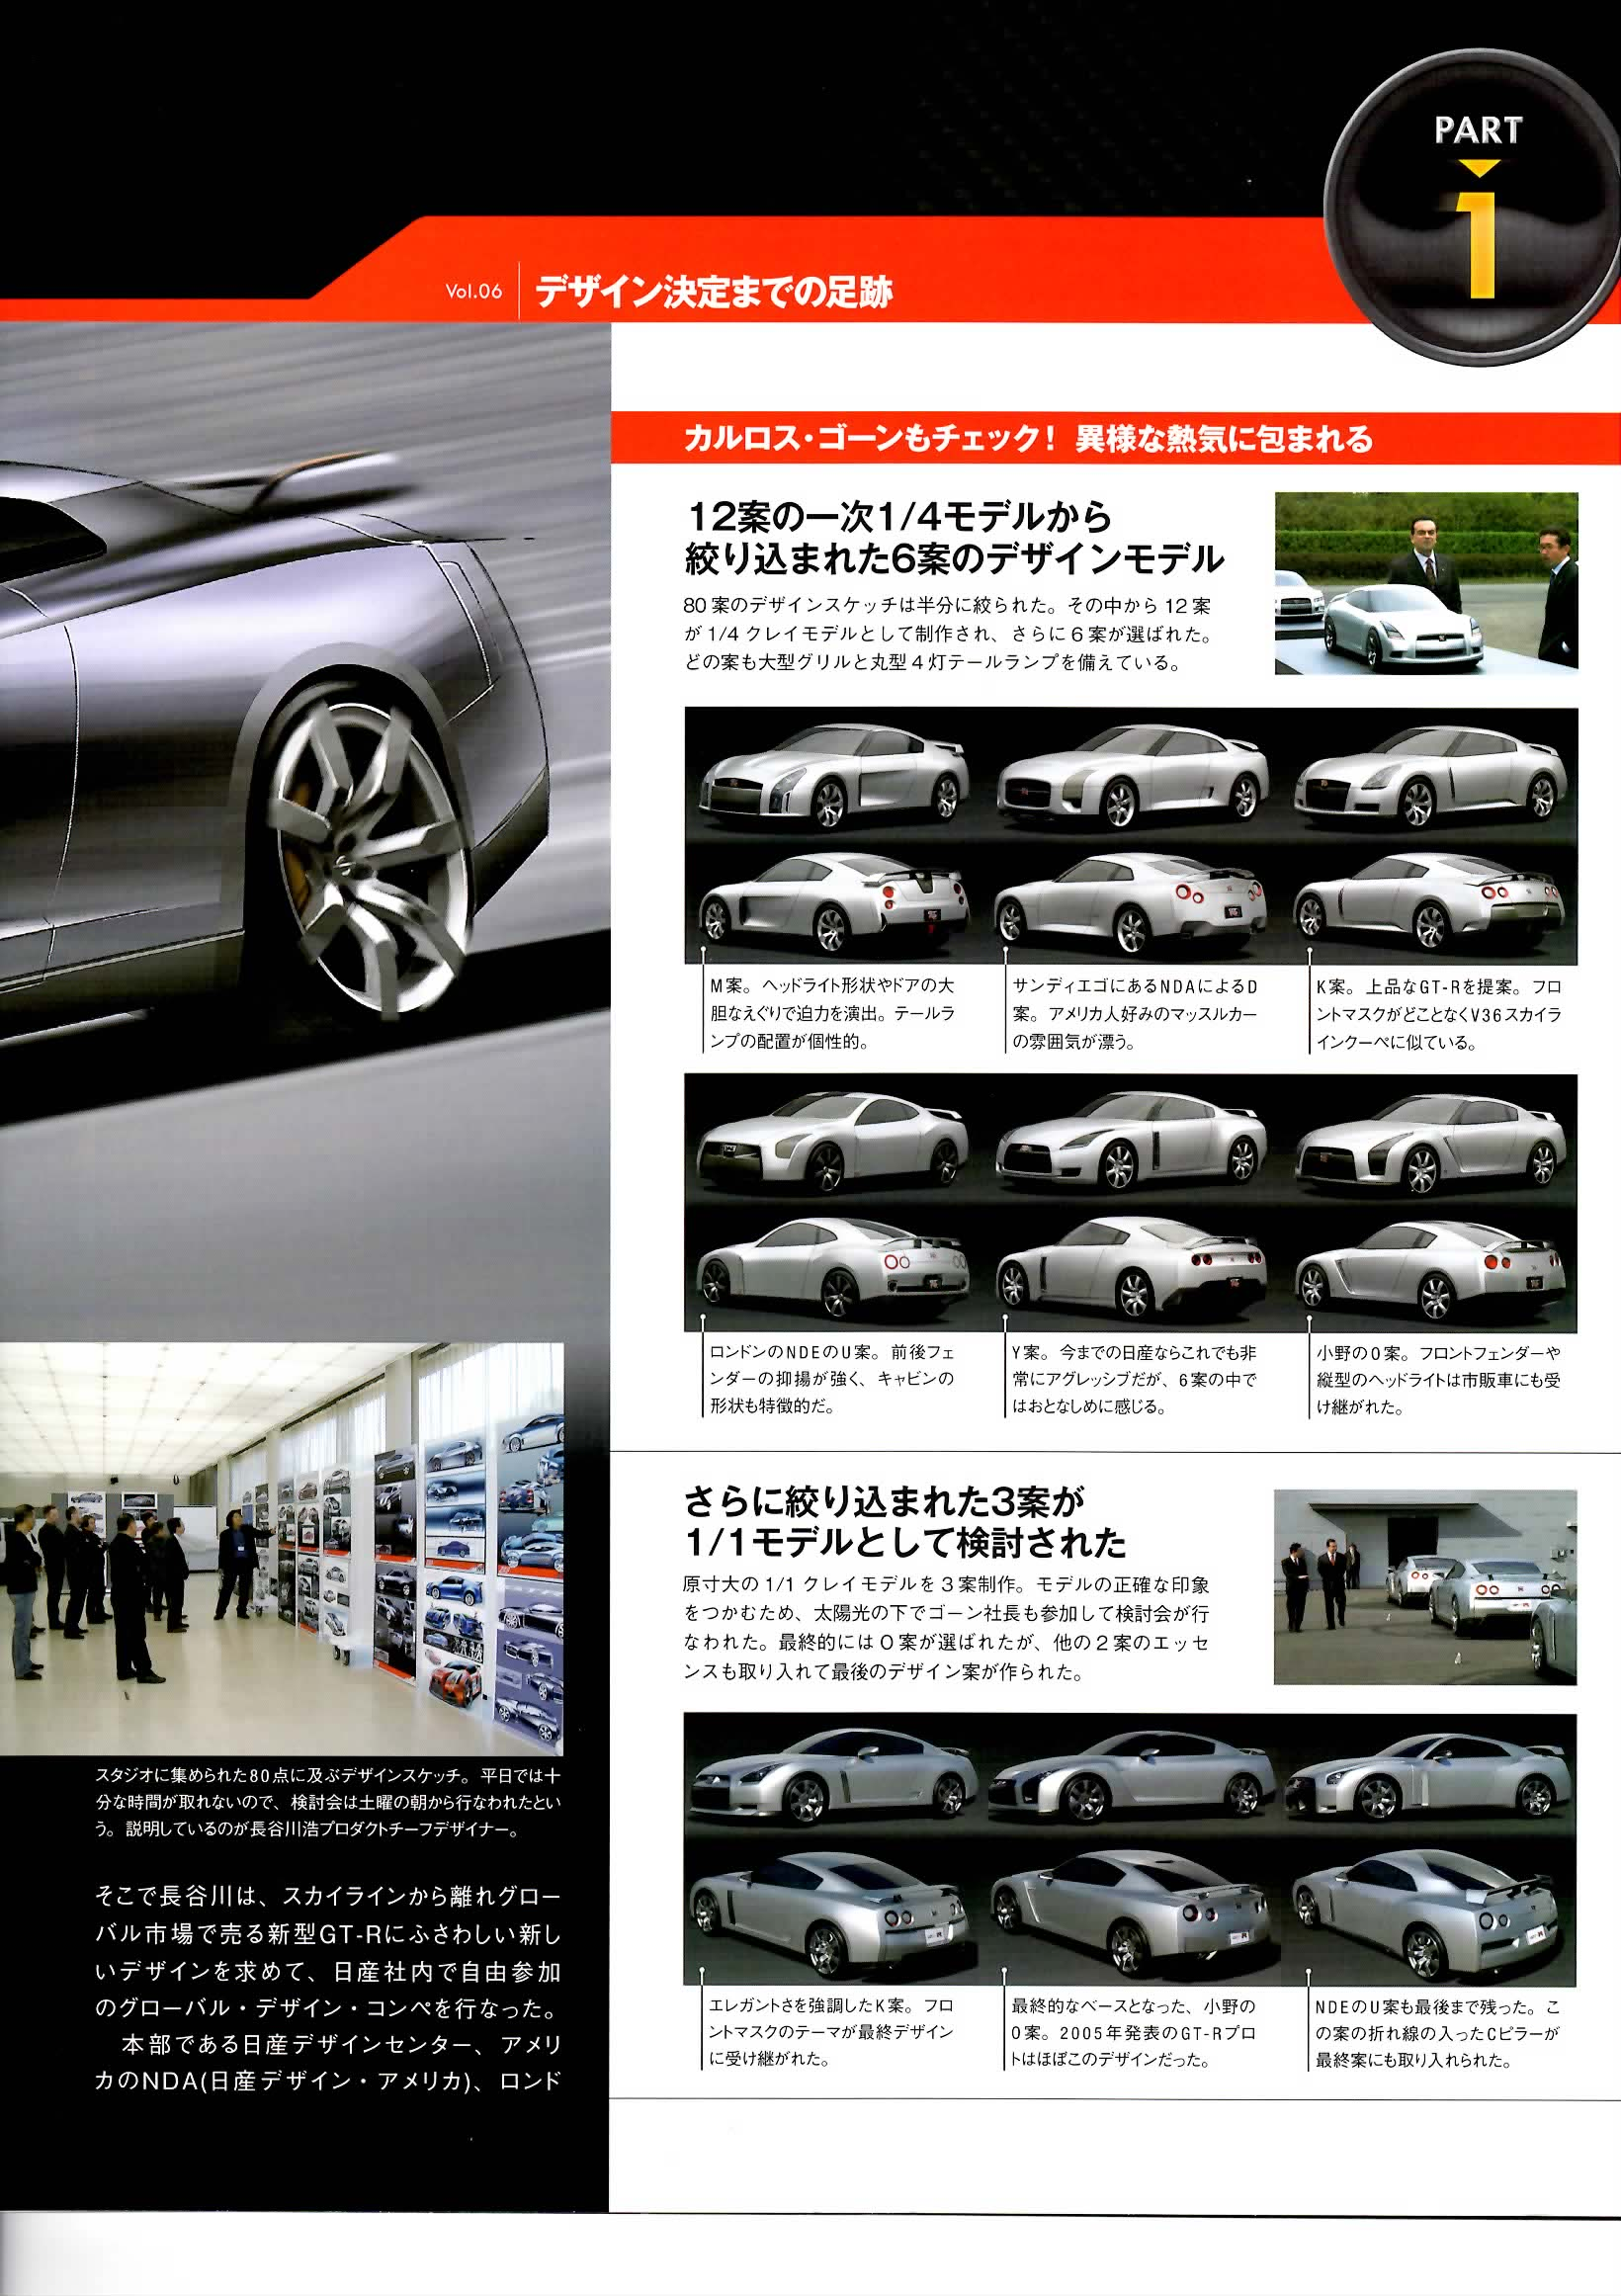 Build Your Own R35 Gt R Week 6 Gtroc Nissan Gtr Sketch Caption Below Photo On Left The 80 Design Sketches In Studio As There Was Not Enough Time During Weekdays Examination Meetings Were Held